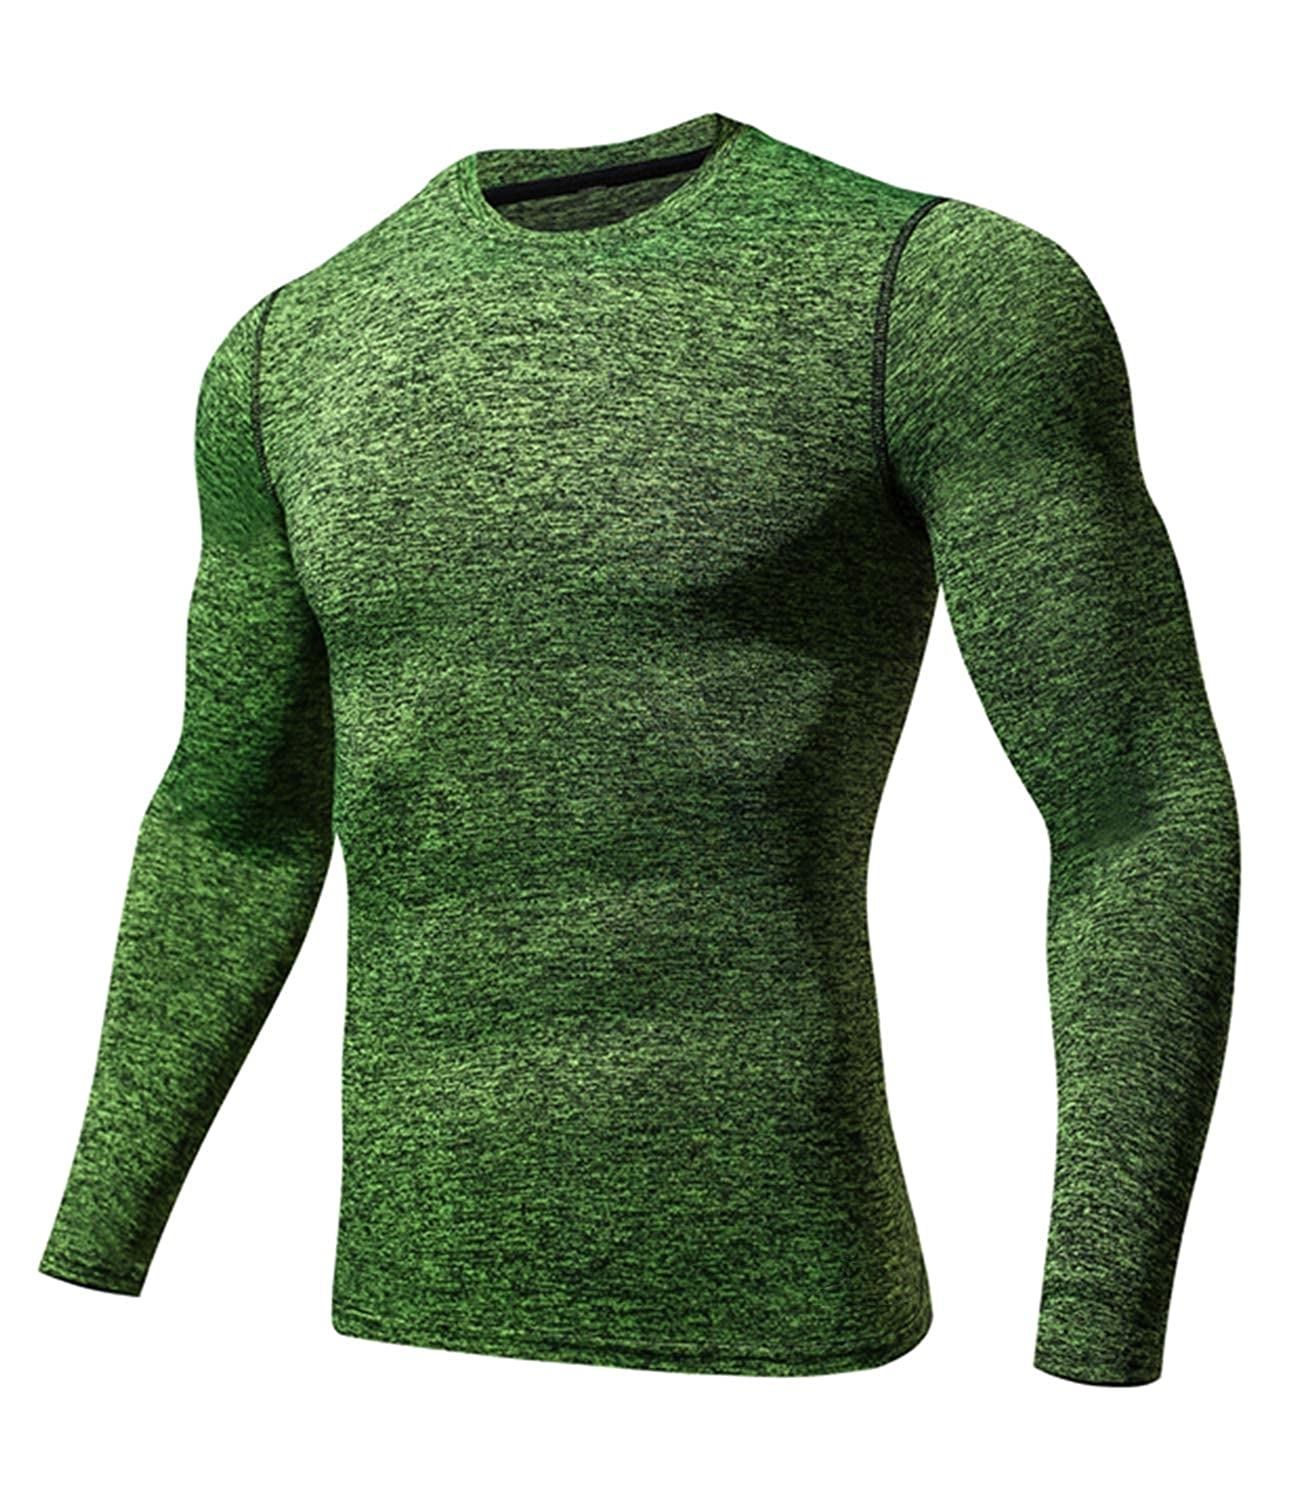 Green XLarge Outto Men's Long Sleeve TShirt Cool Dry Compression Base Layer for Sports